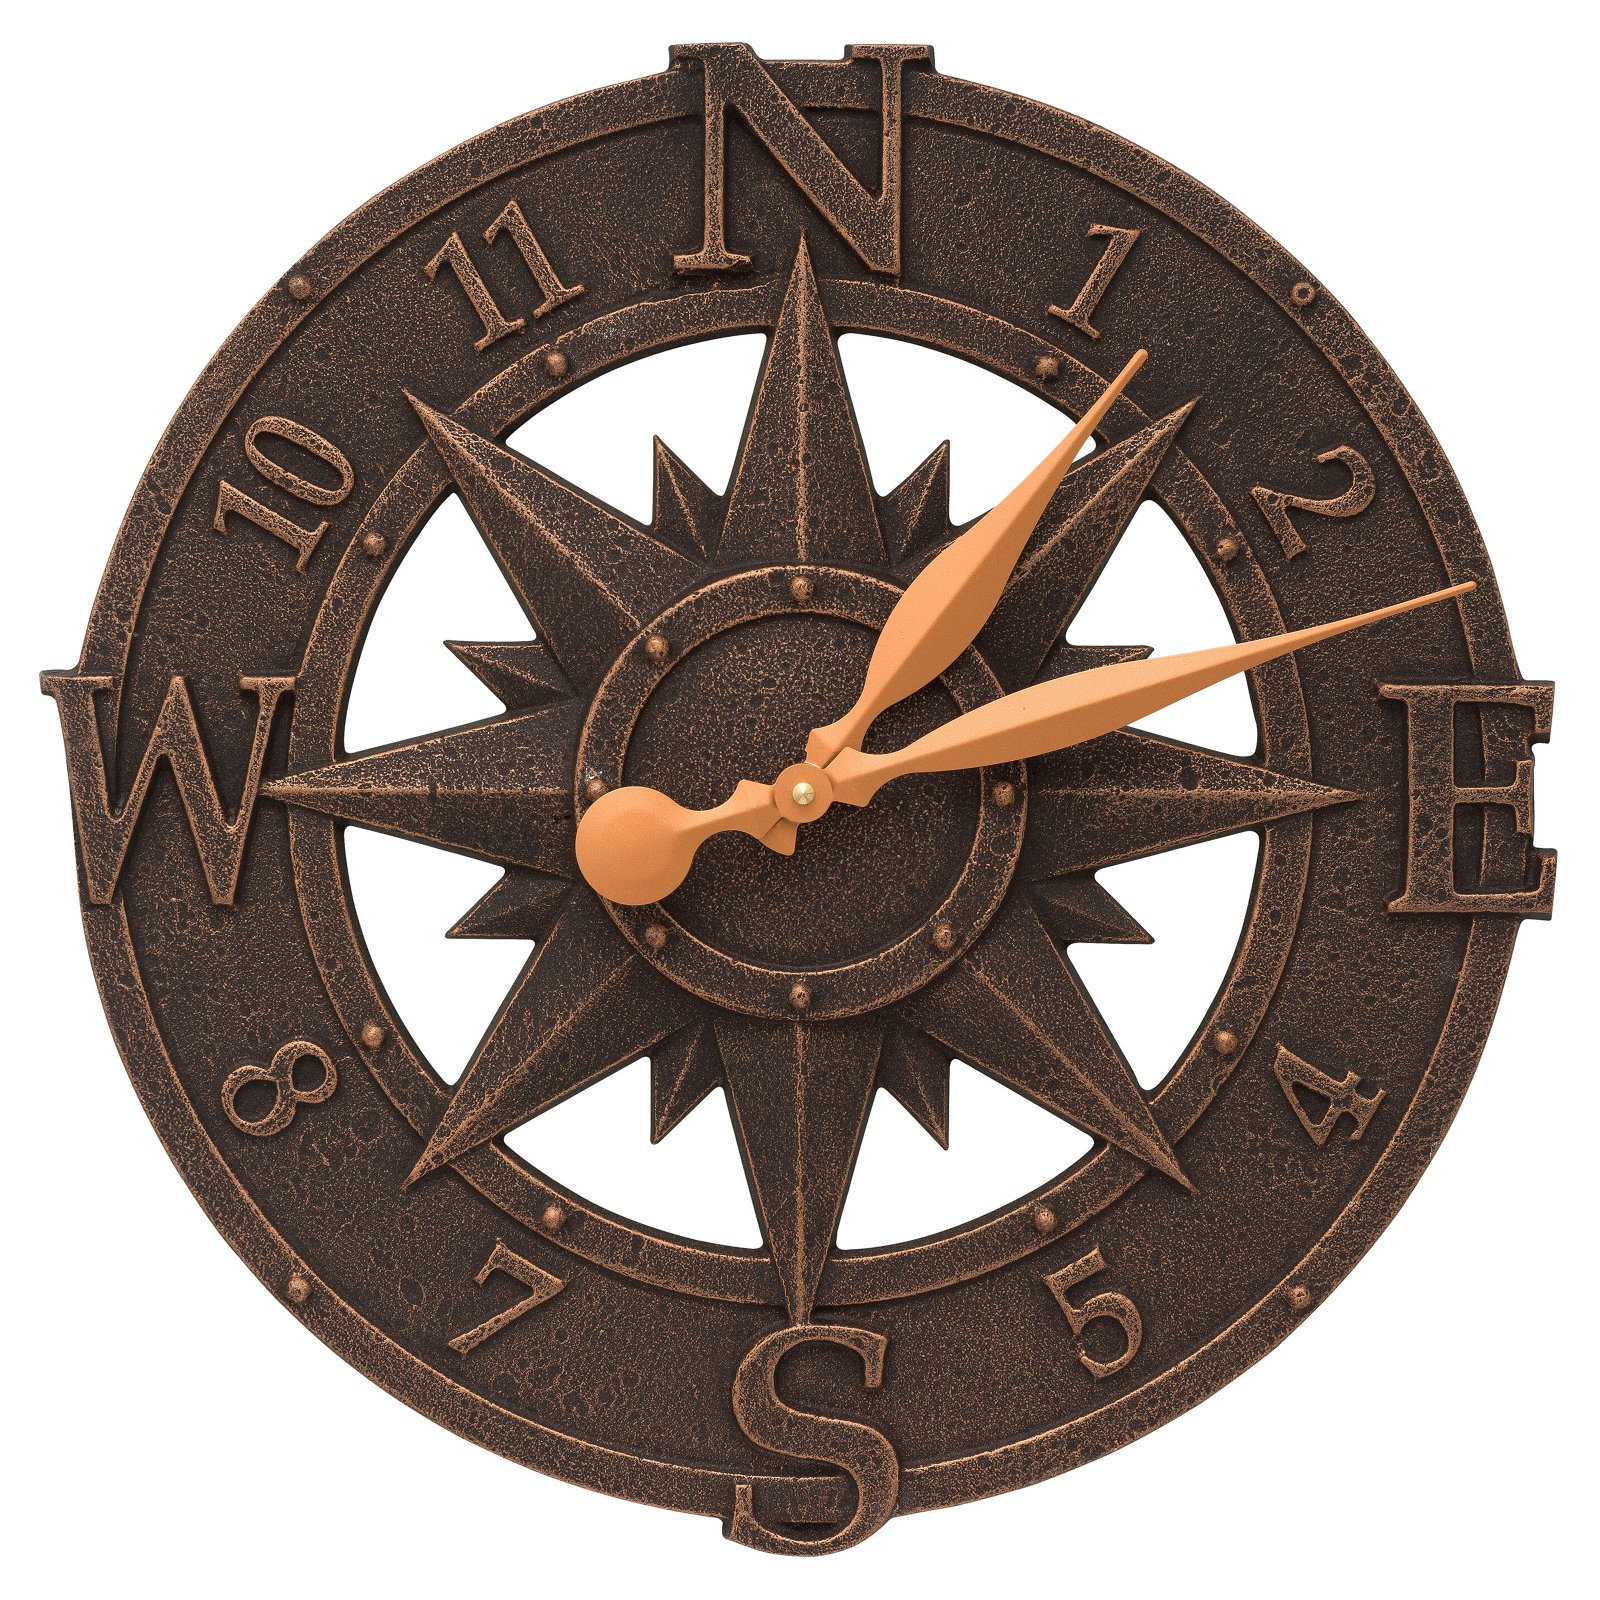 Whitehall Products Compass Rose 16-in. Indoor/Outdoor Wall Clock